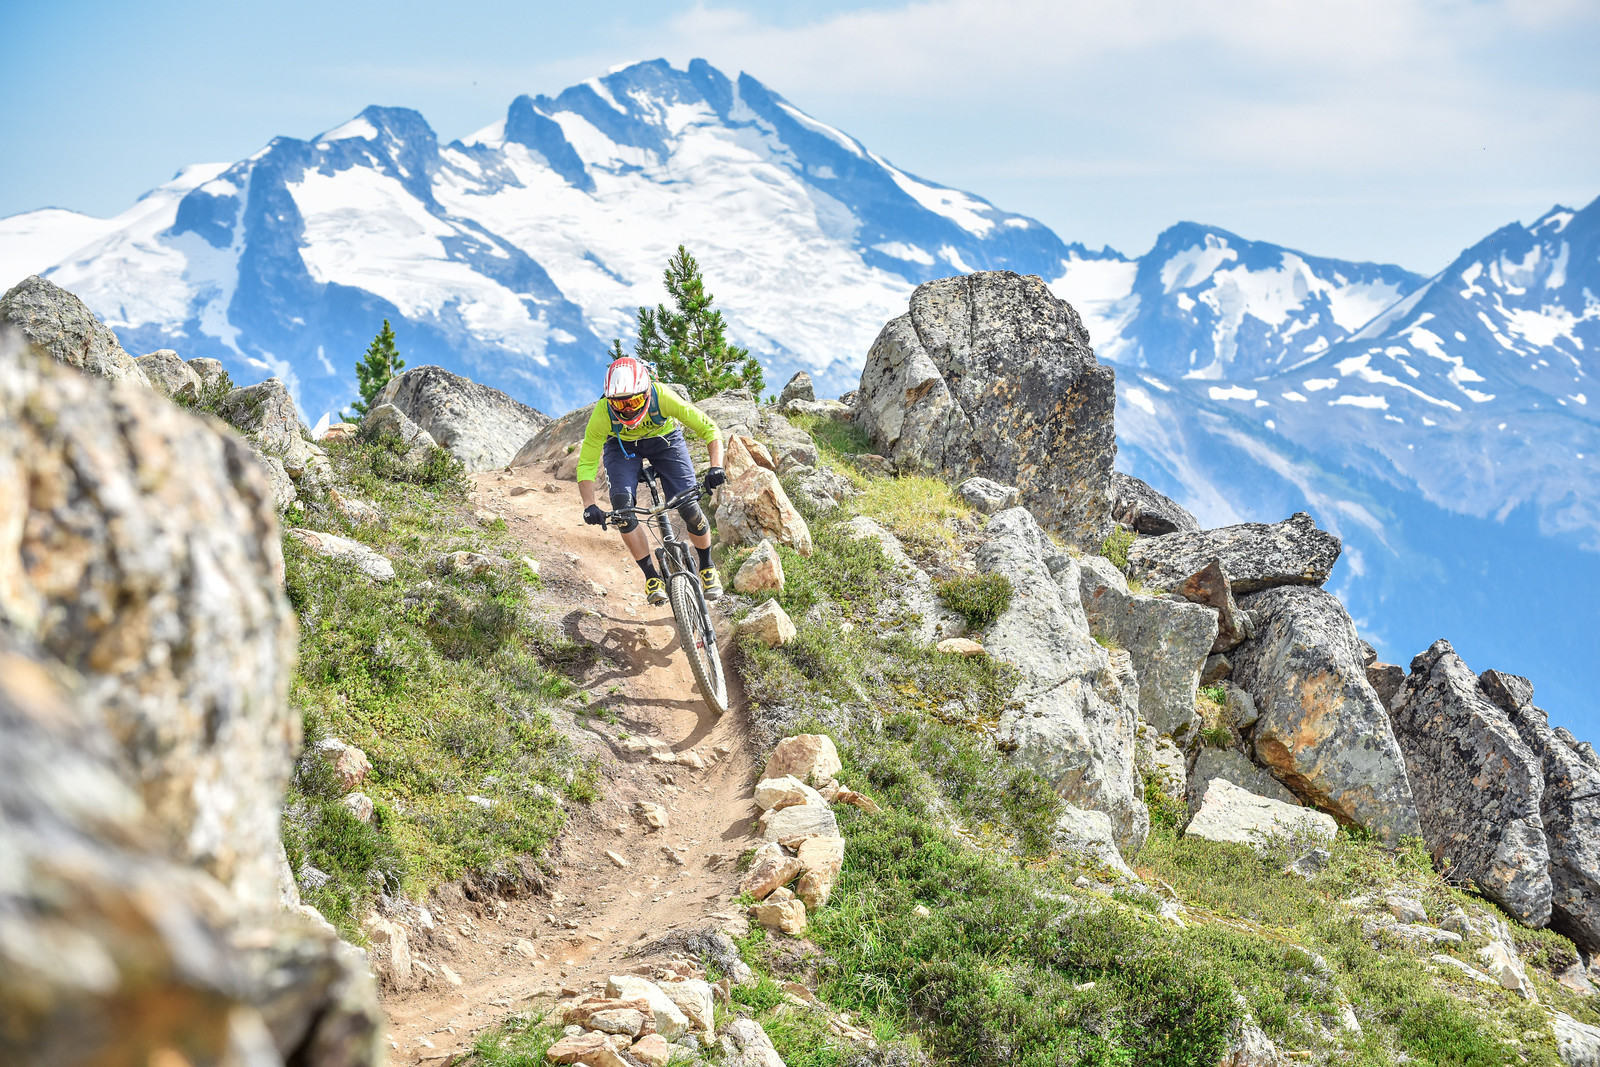 Top Of The World Whistler BC - rstlawrence - Mountain Biking Pictures - Vital MTB